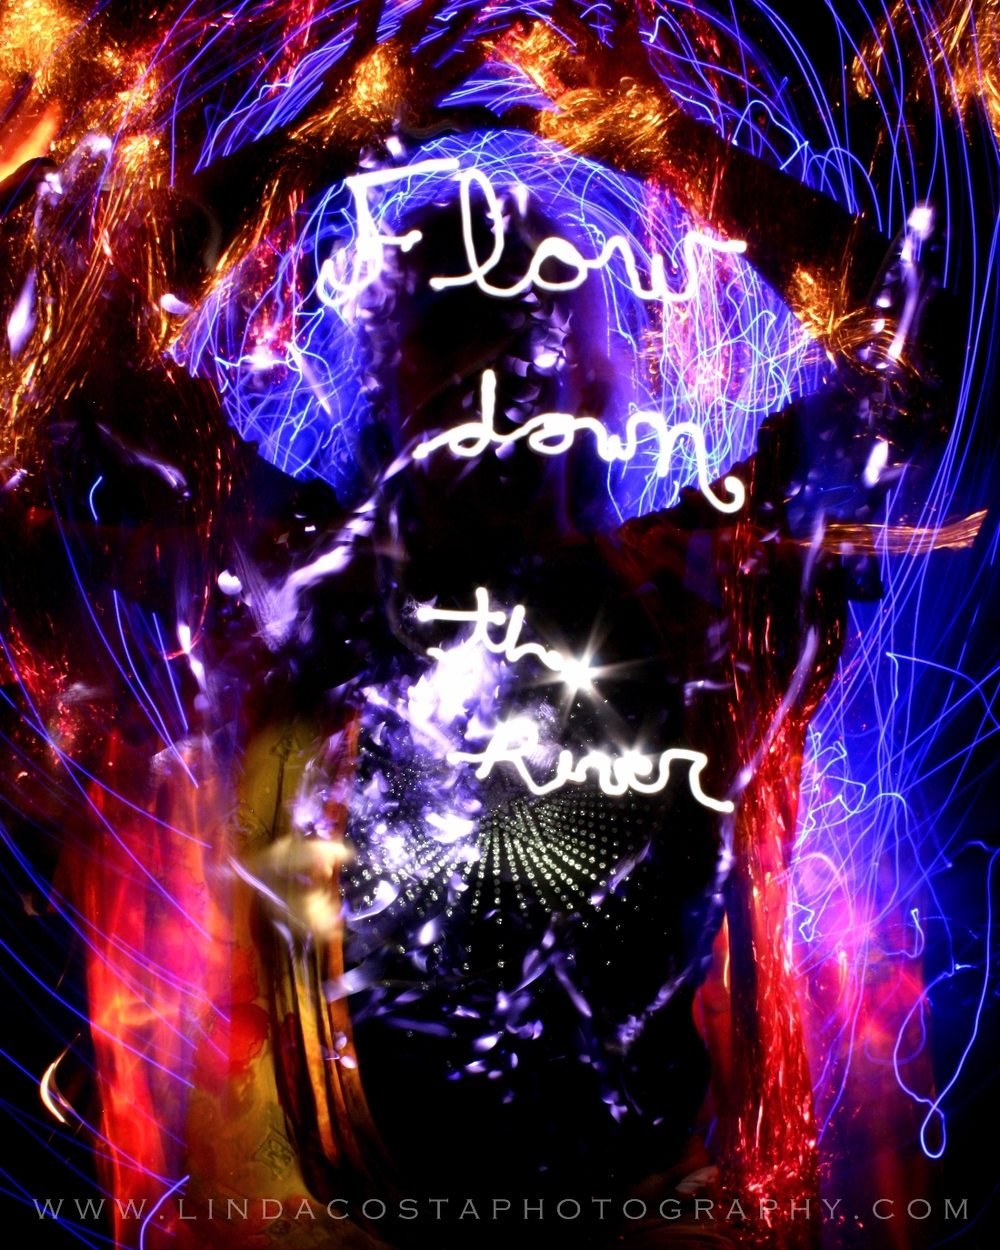 """Flow Down River"" a participant's intention written and painted in light by me."